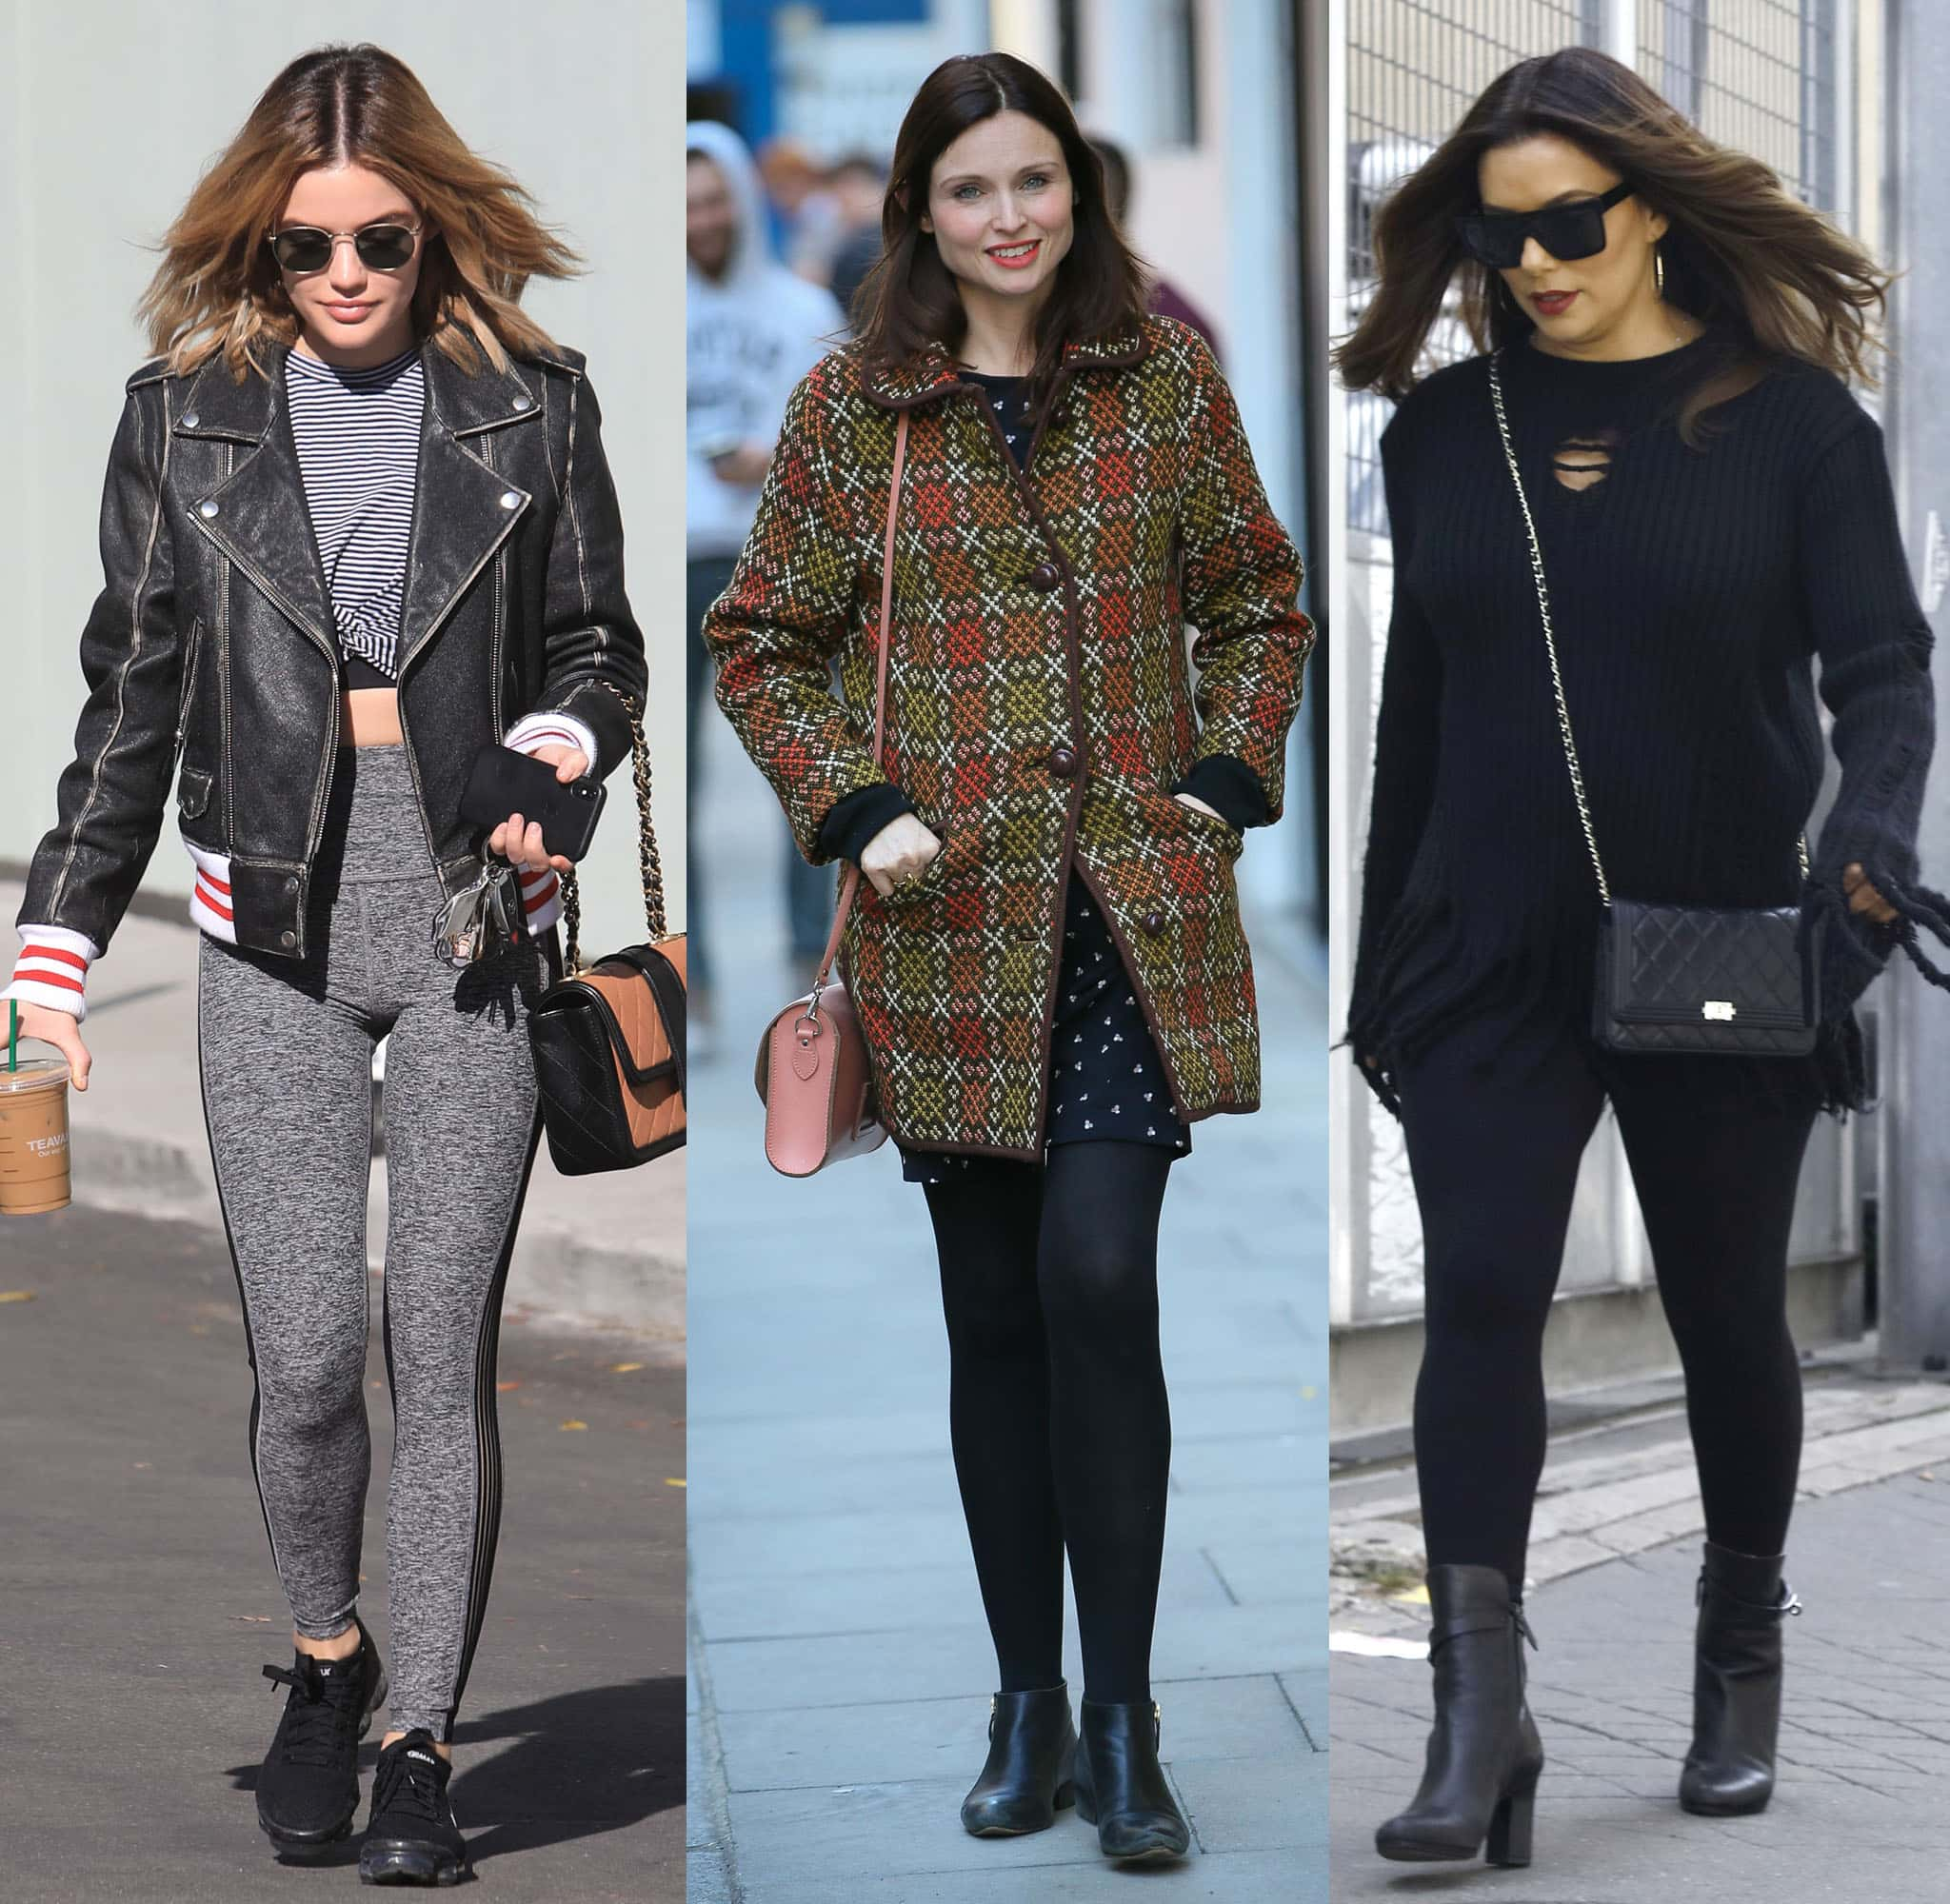 Lucy Hale, Sophie Ellis Bextor, and Eva Longoria show street-chic outfits with leggings